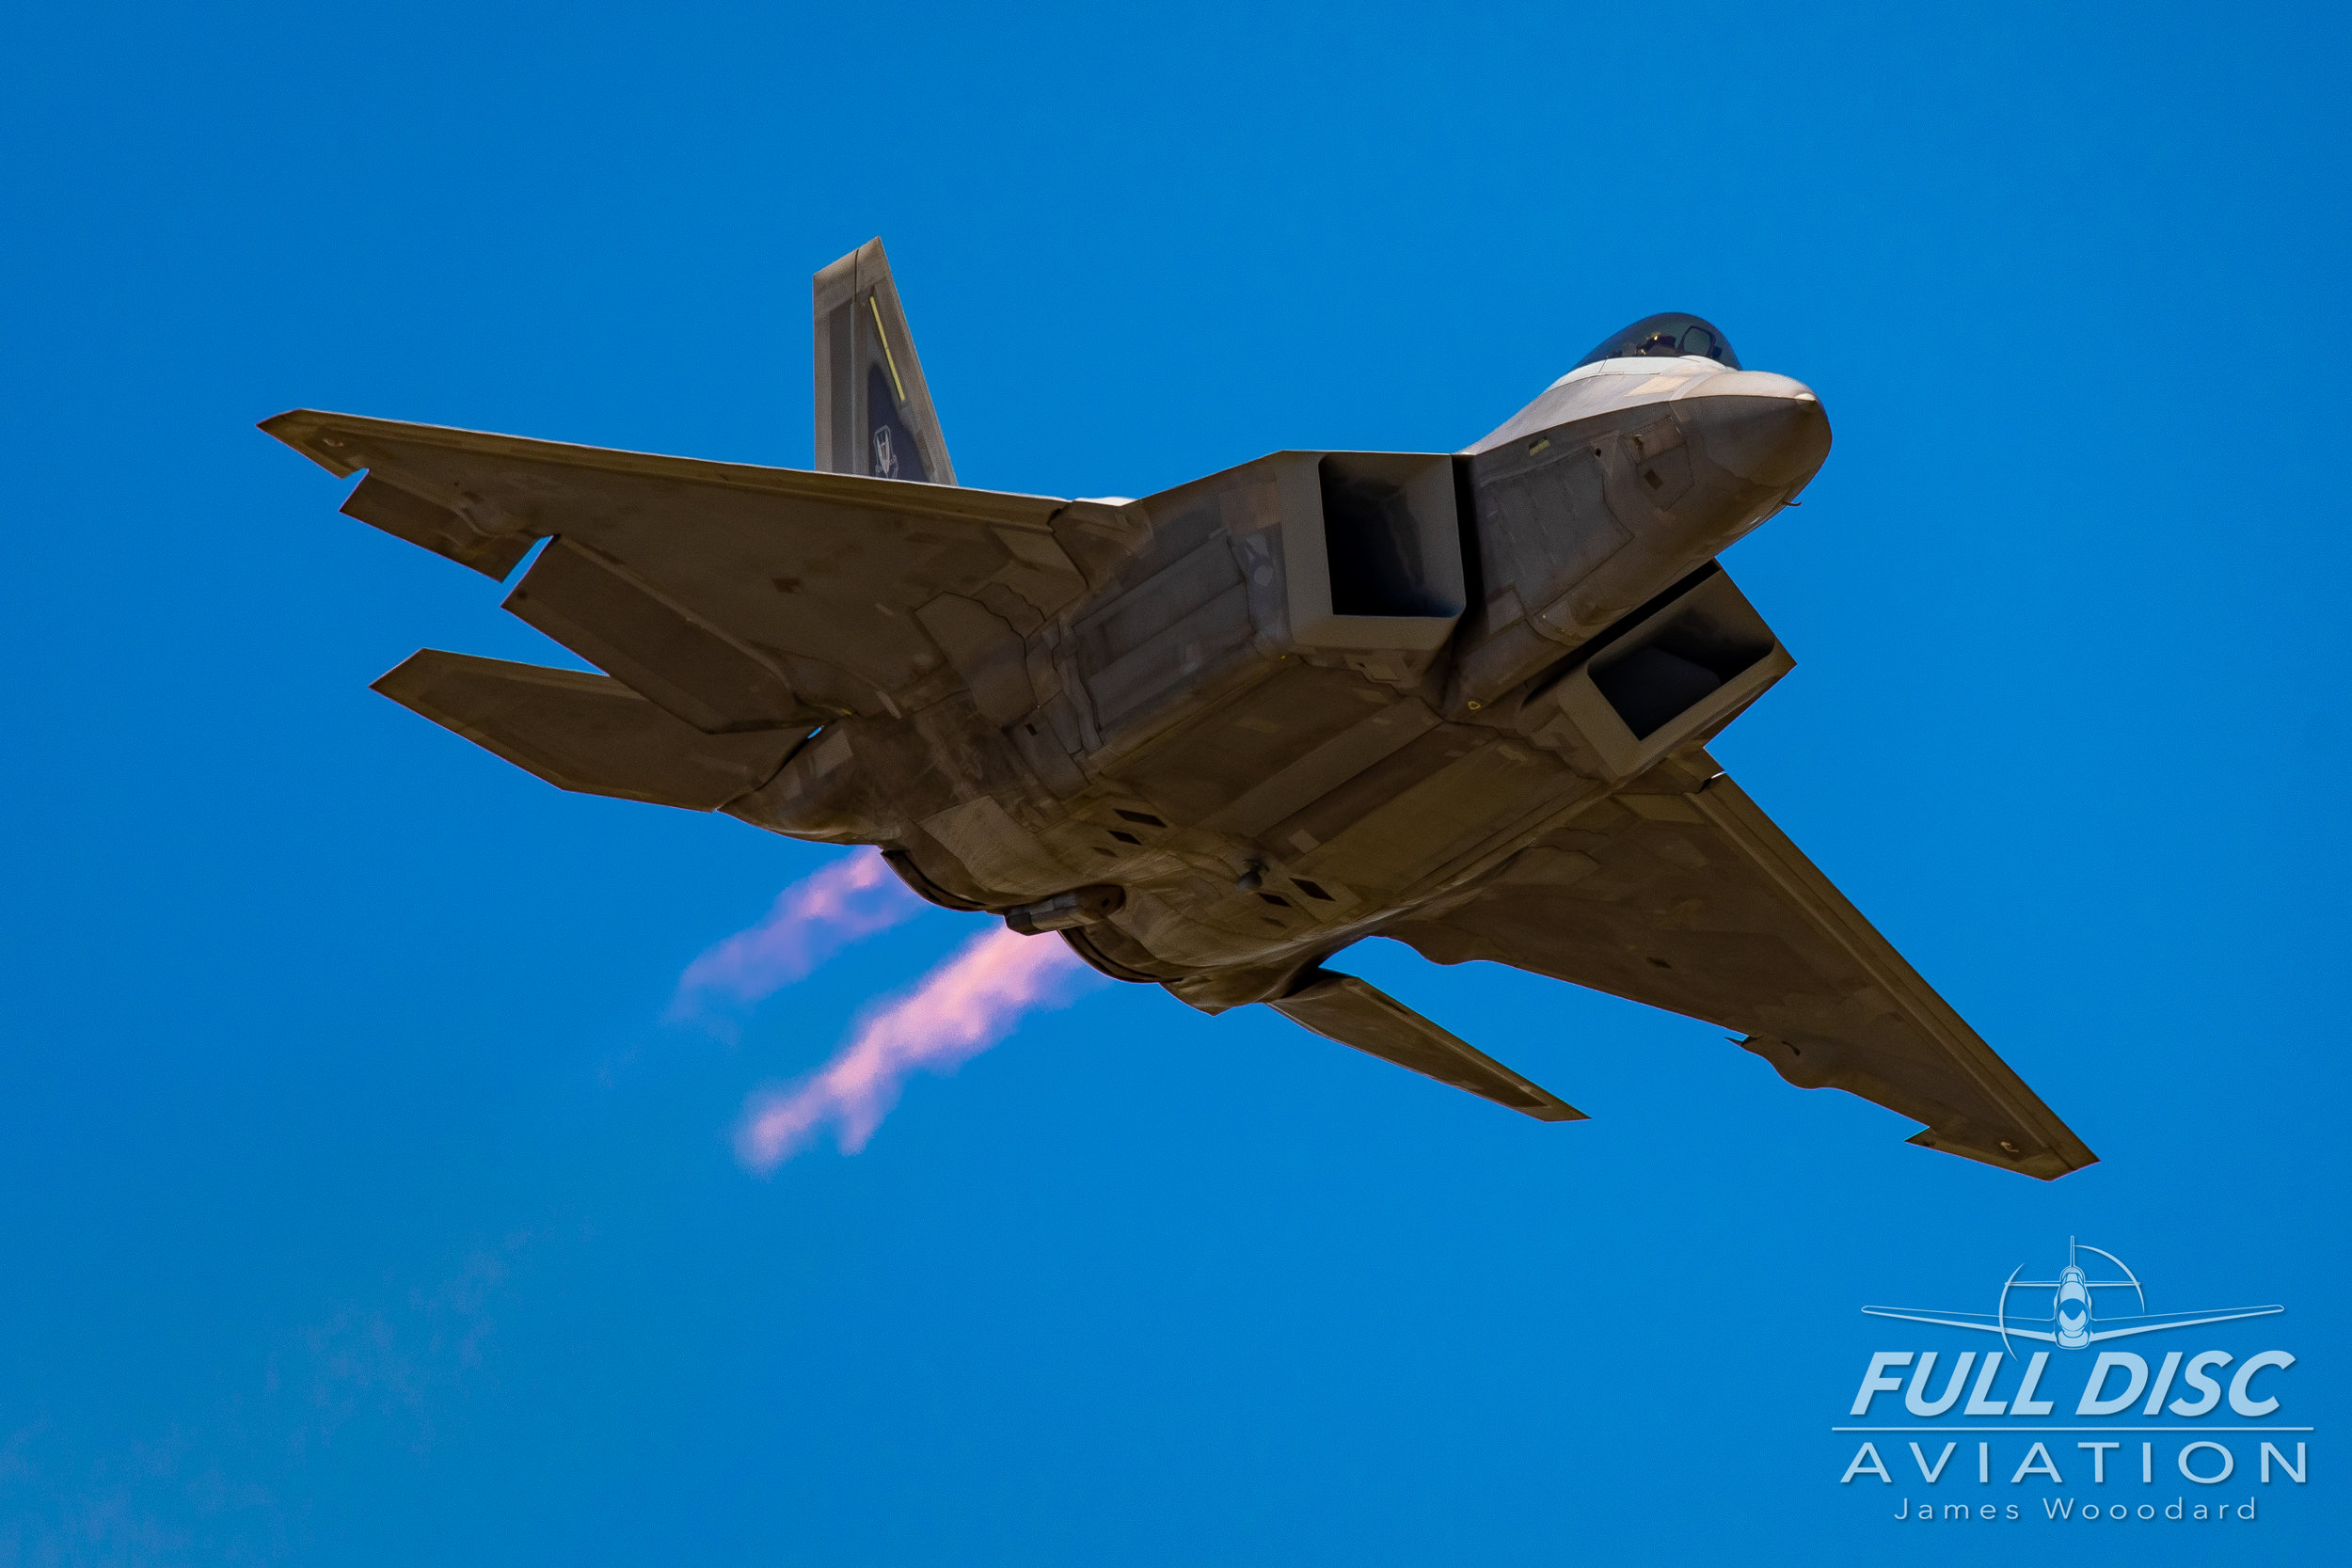 F22_FullDiscAviation_JamesWoodard-April 27, 2019-05.jpg